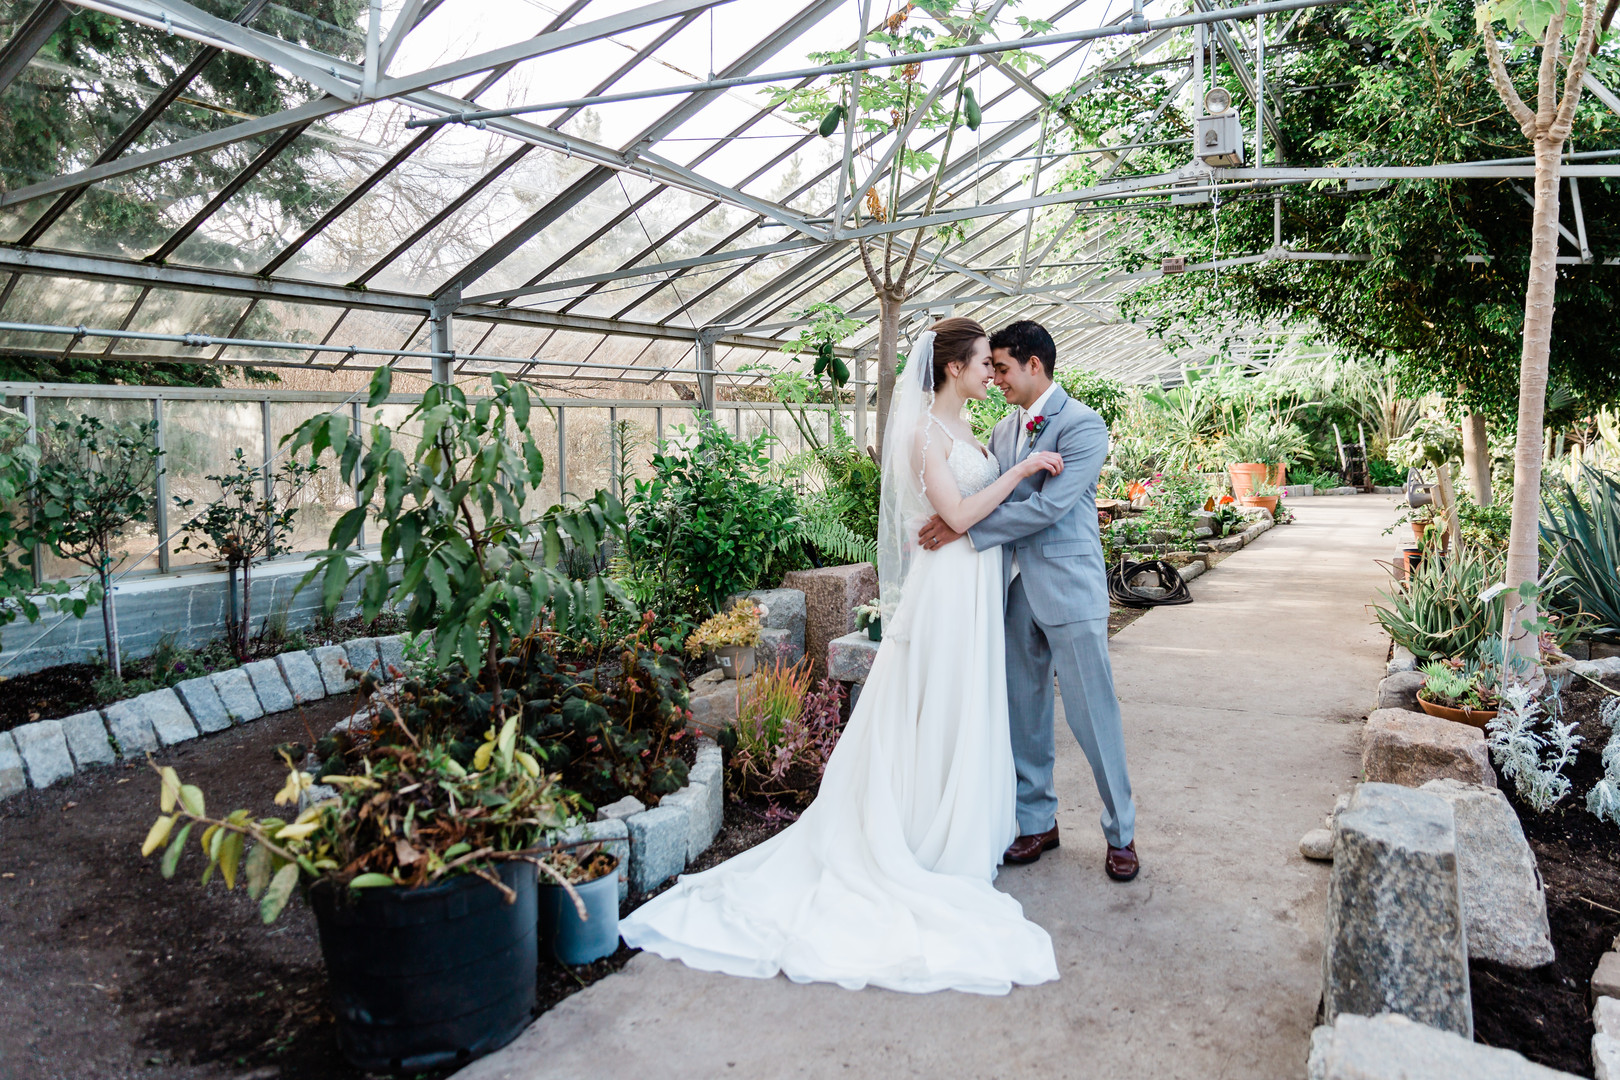 Kelly and Marvin's Tropical Wedding at the Providence Botanical Gardens